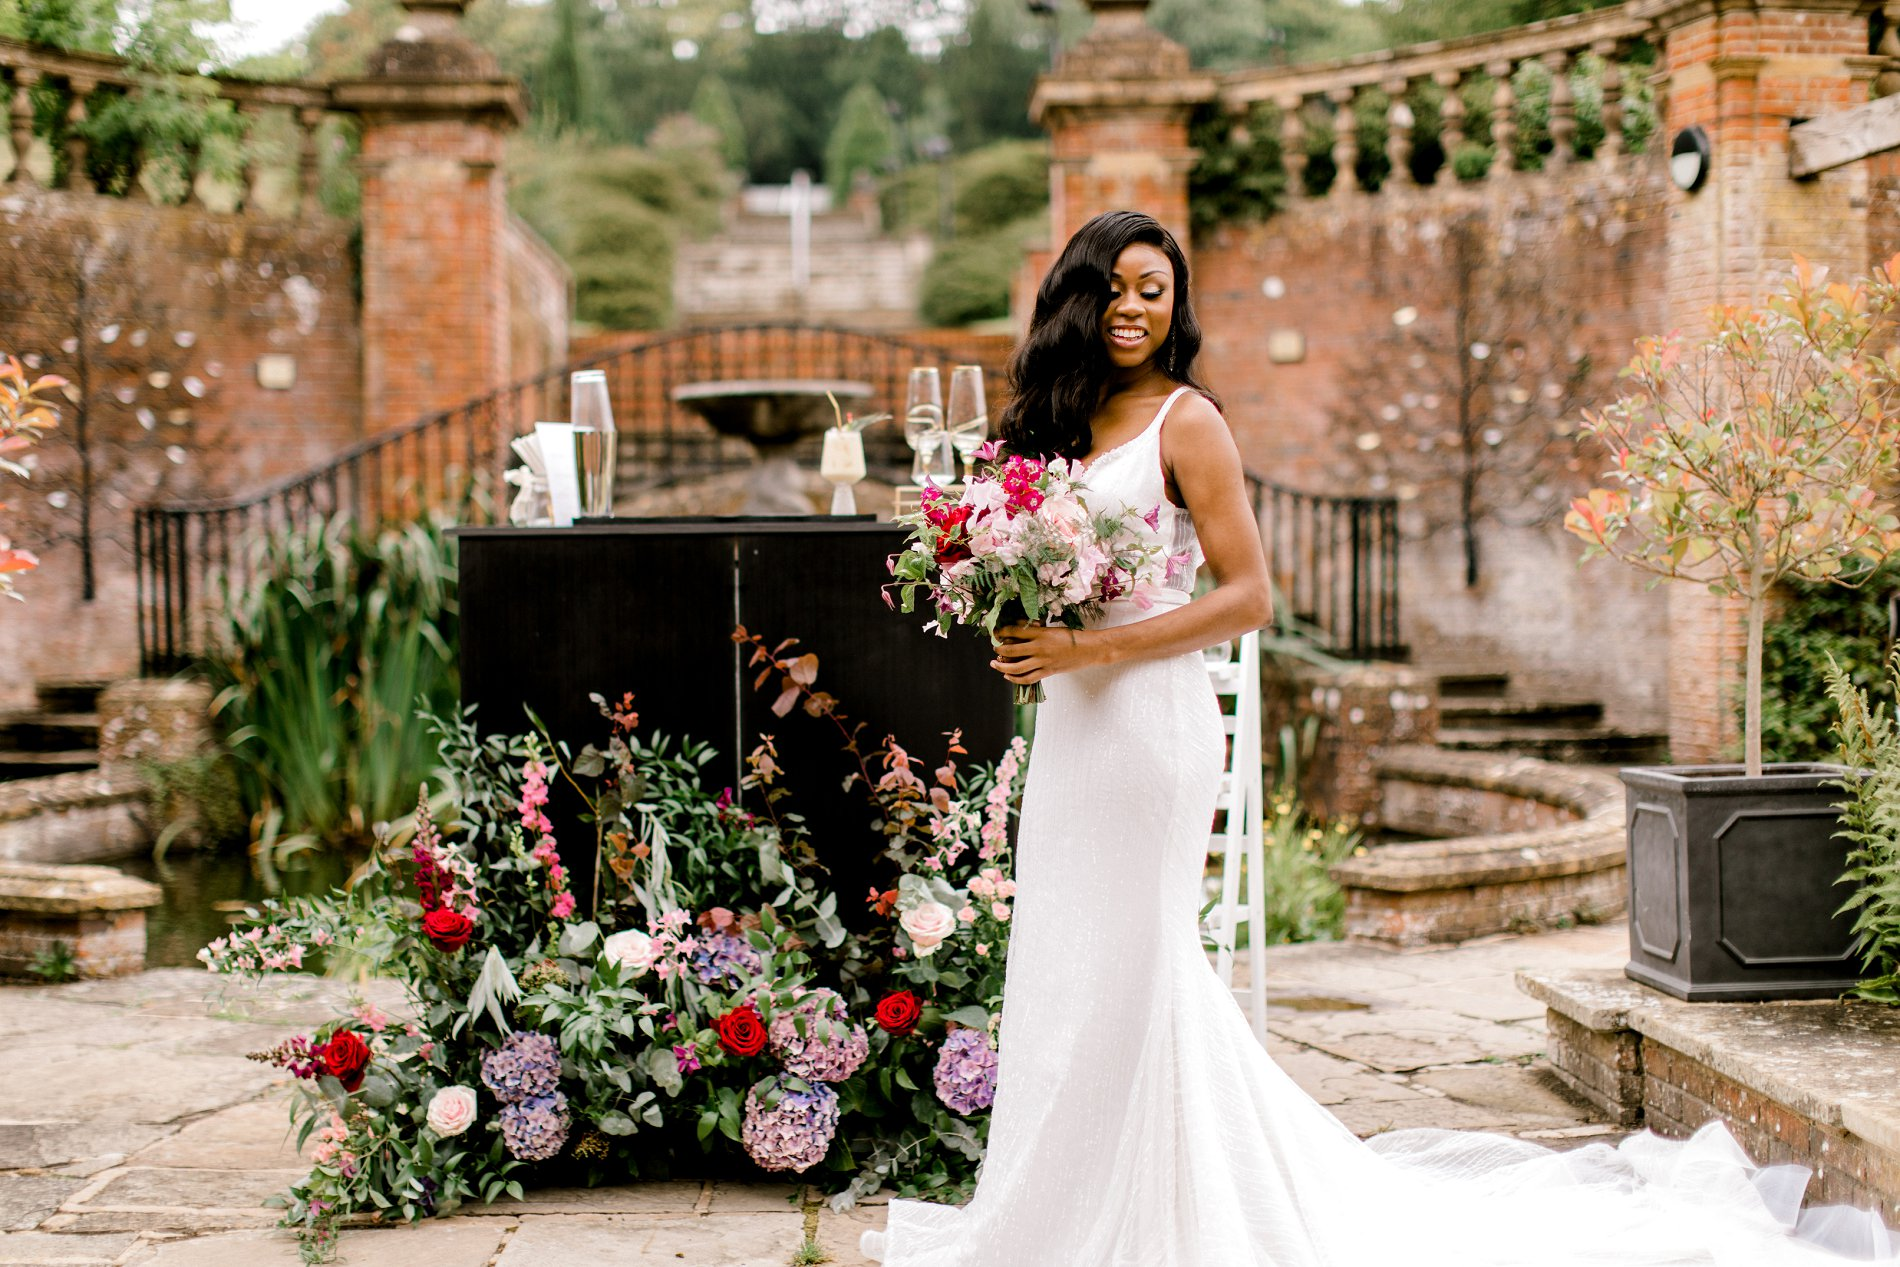 Forever Yours Styled Shoot (c) Camilla J. Hards and Courtney Dee Photography (48)